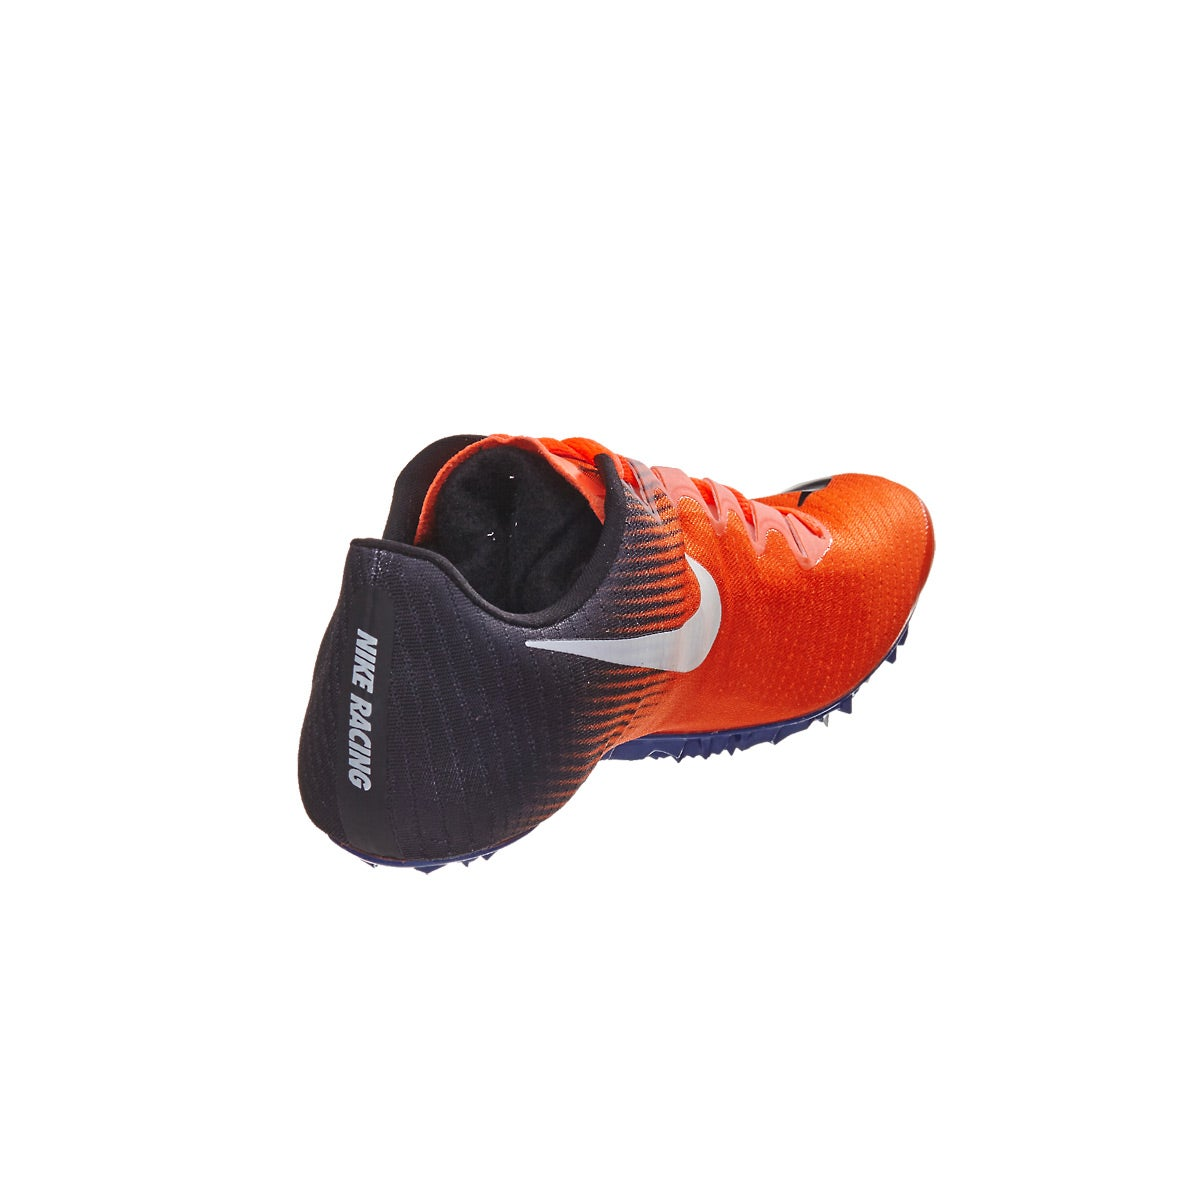 half off a6cba b693b Nike Zoom Superfly Elite Unisex Spikes Hyper Orange 360° View  Running  Warehouse.